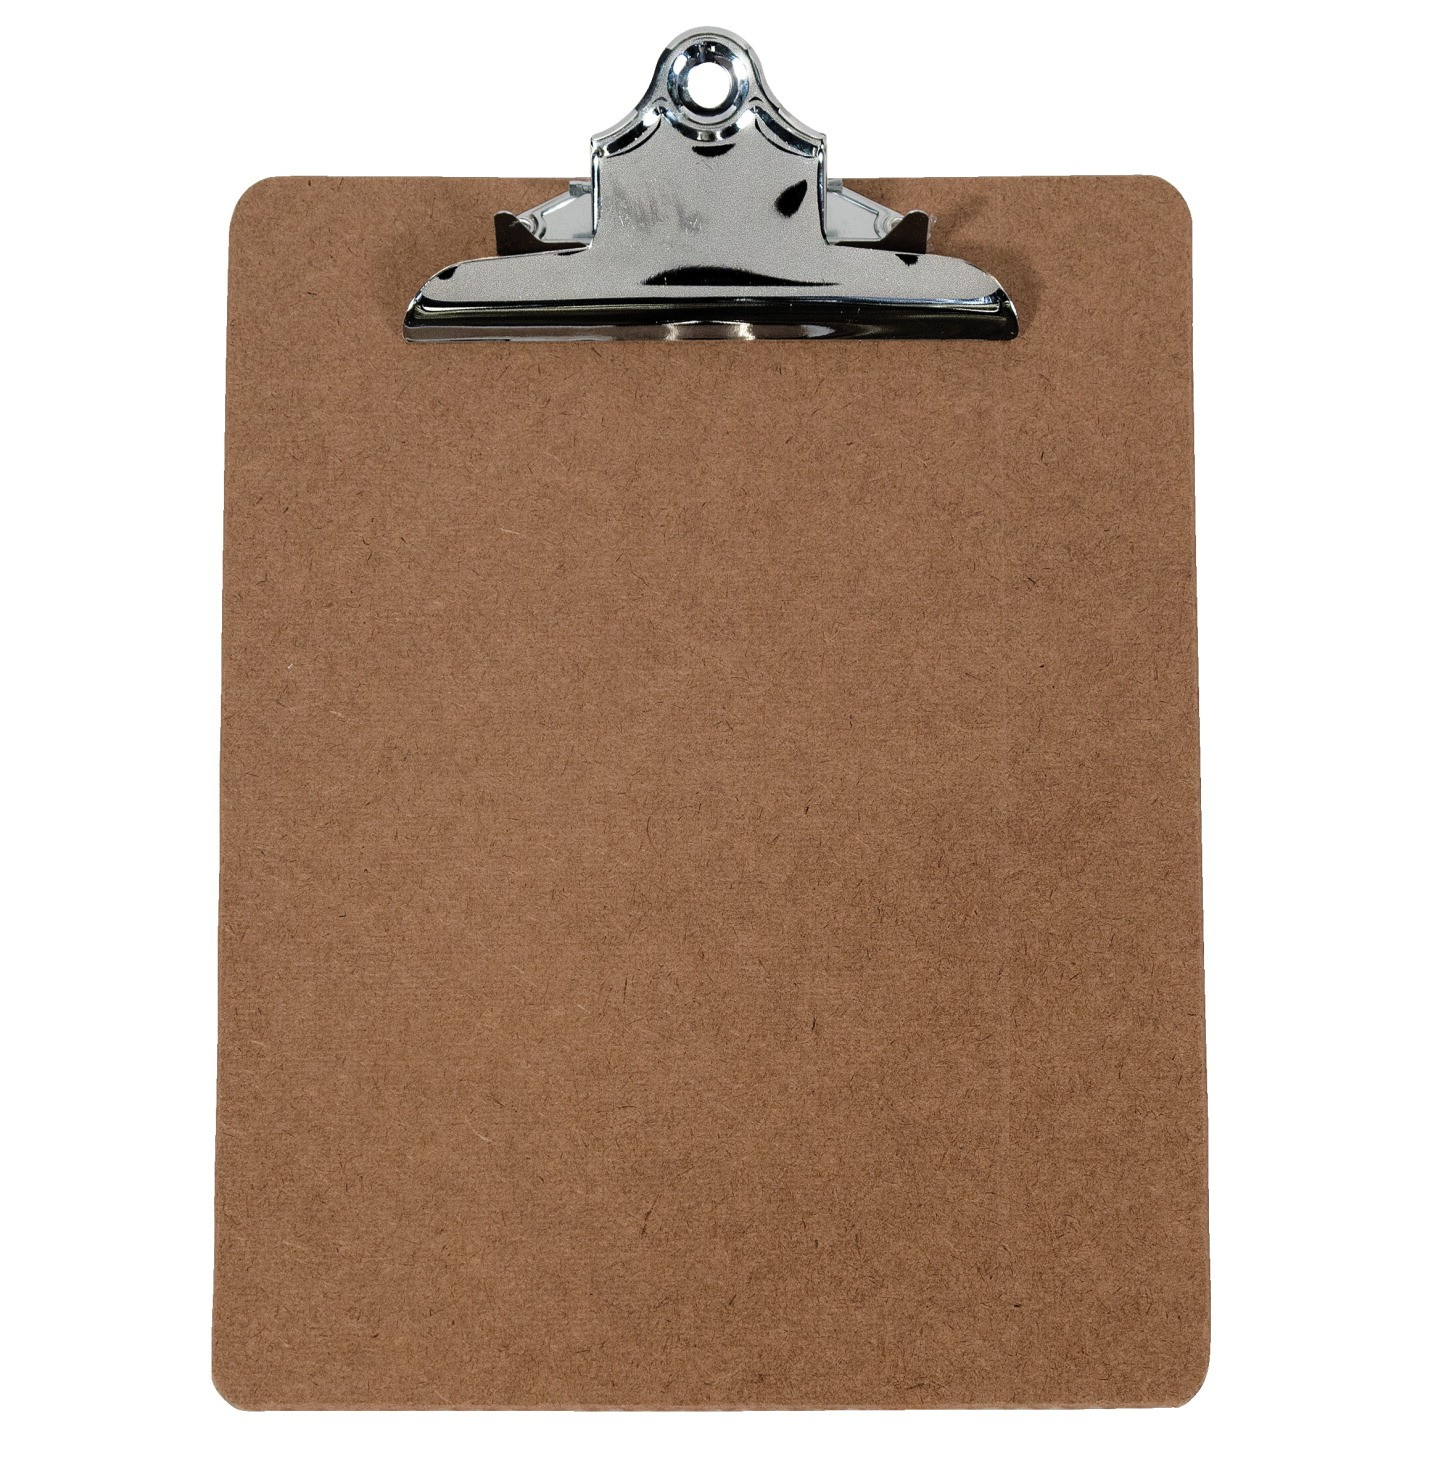 9 X 12-1/2, Clipboard, Letter Size, Brown